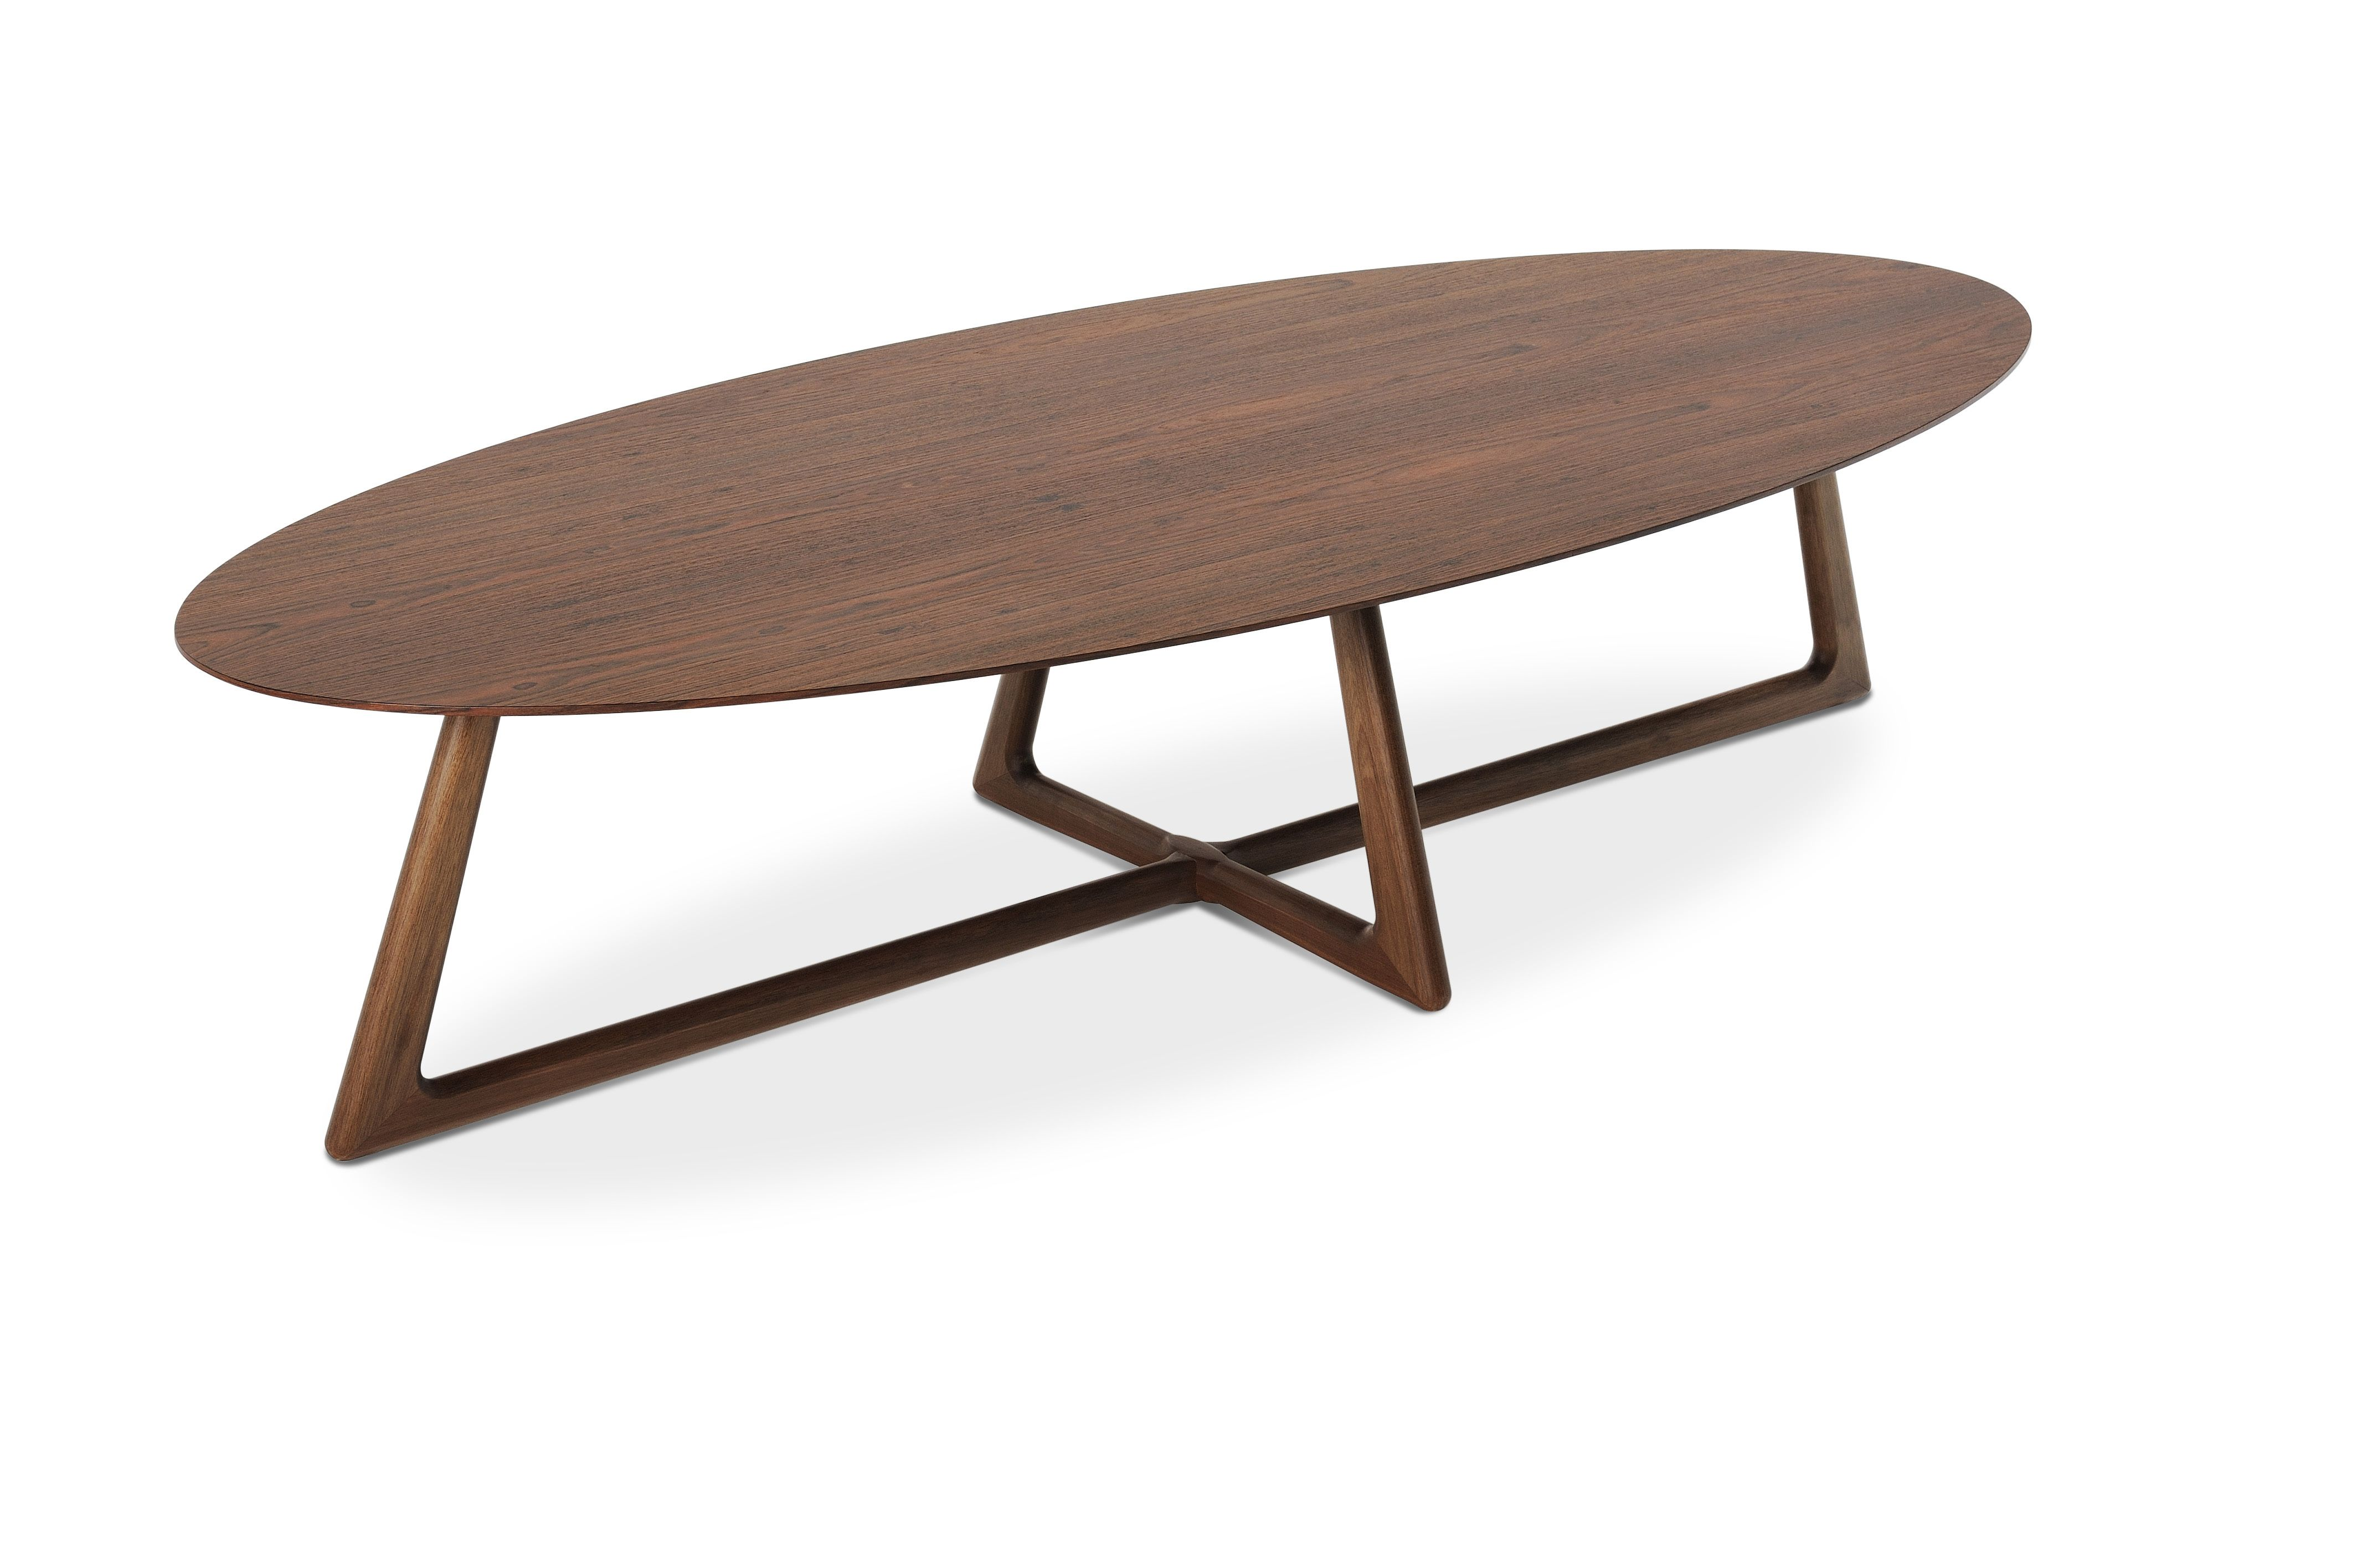 The Orbit Coffee Table S Innovative Circular Shape Was Inspired By The Elliptical Trajectory Of A Body In Movement Coffee Table Furniture Table [ 2832 x 4256 Pixel ]